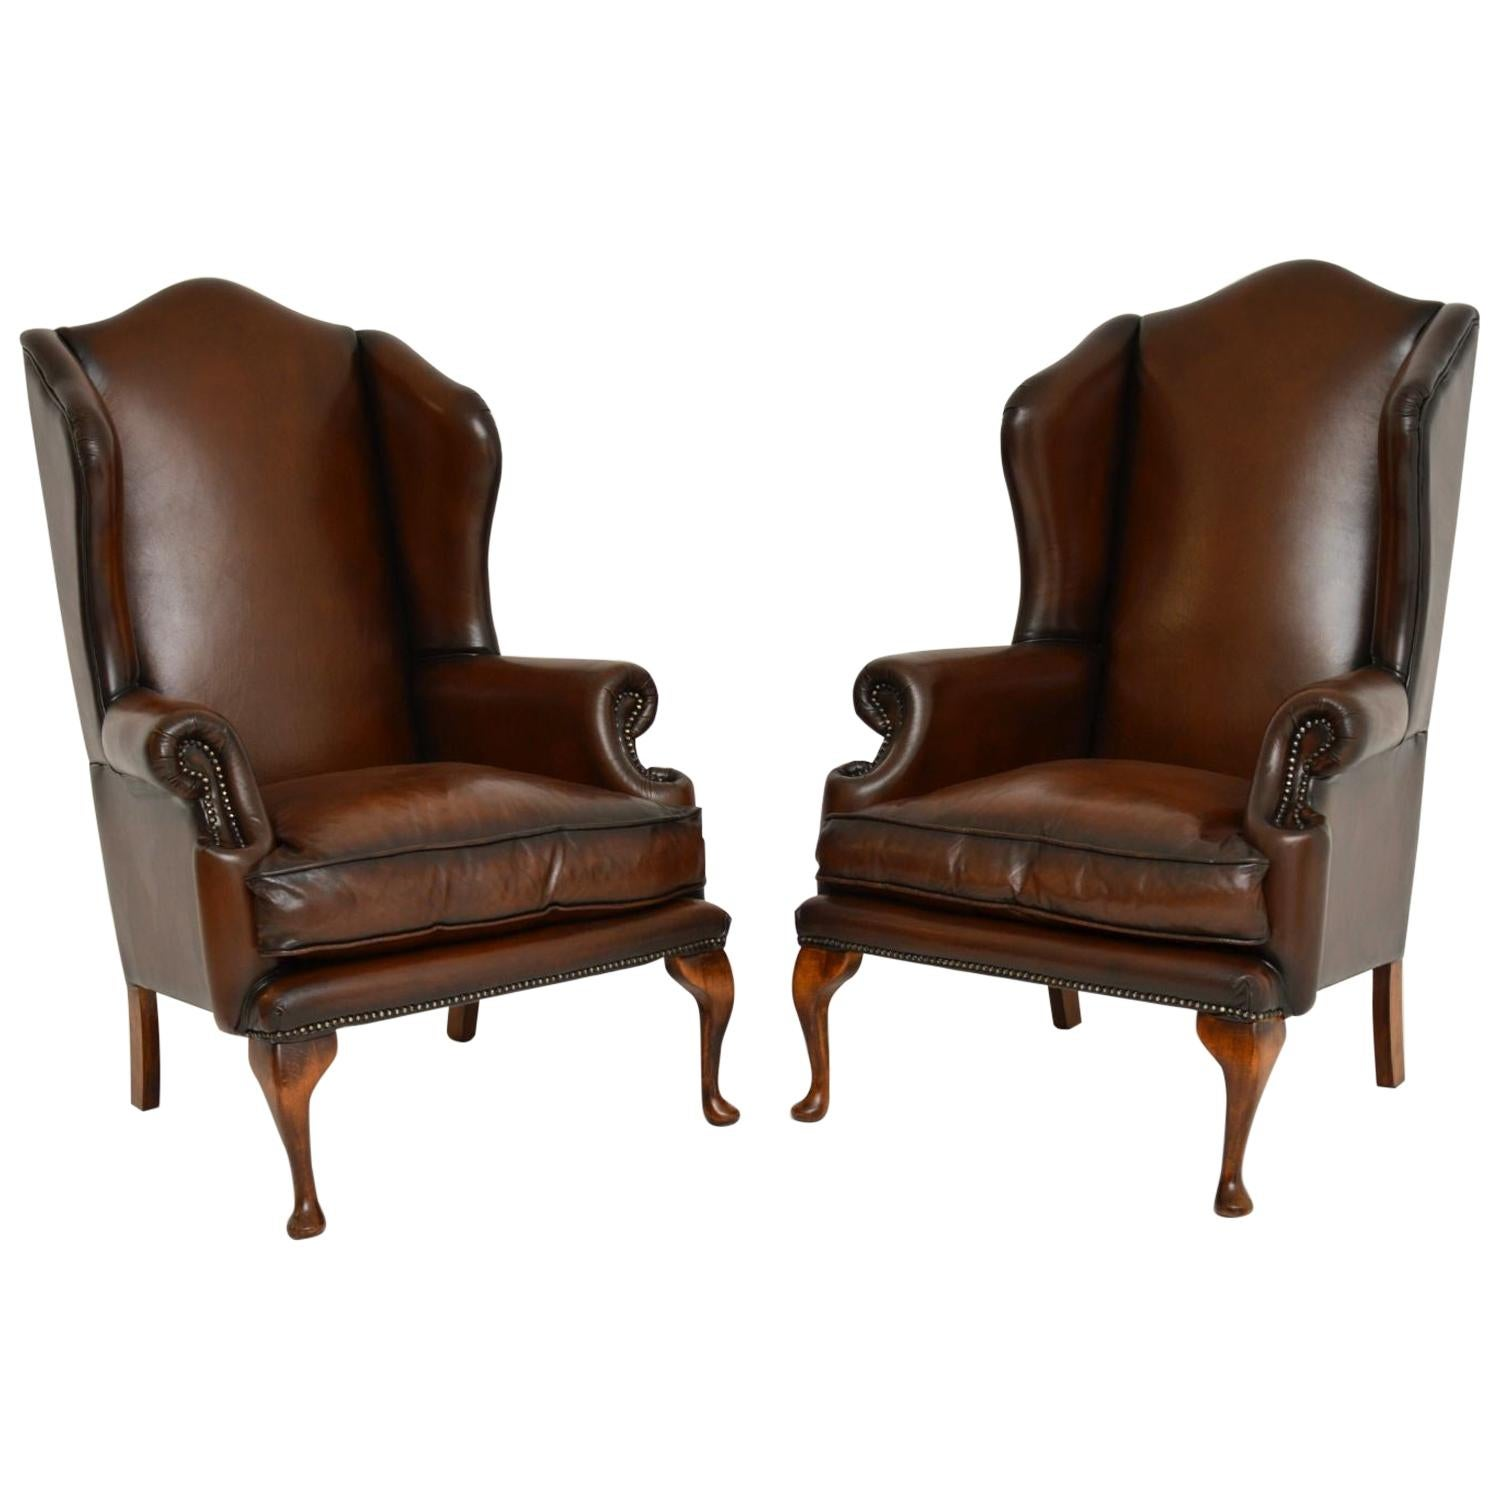 Pair of Antique Georgian Style Leather Wingback Armchairs